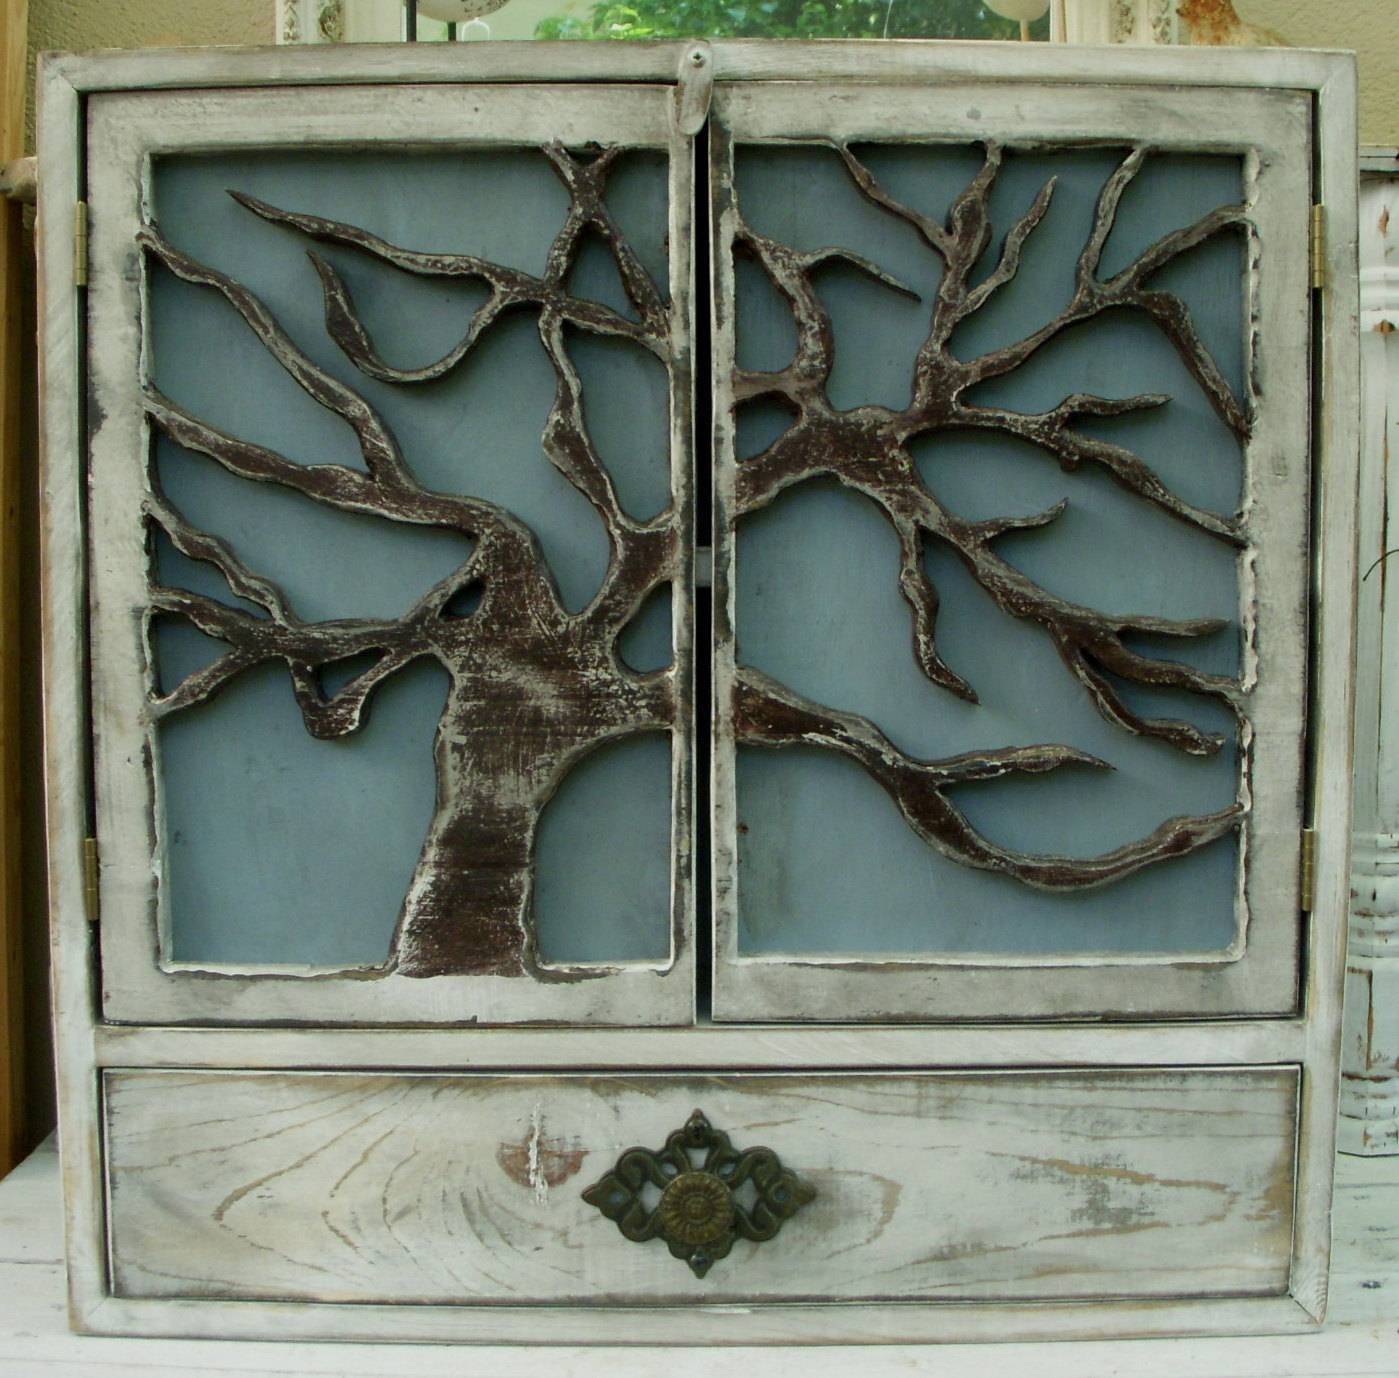 Wood Cabinet Shelf Tree Art Oak Door Artistic Throughout Most Popular Oak Tree Wall Art (View 30 of 30)